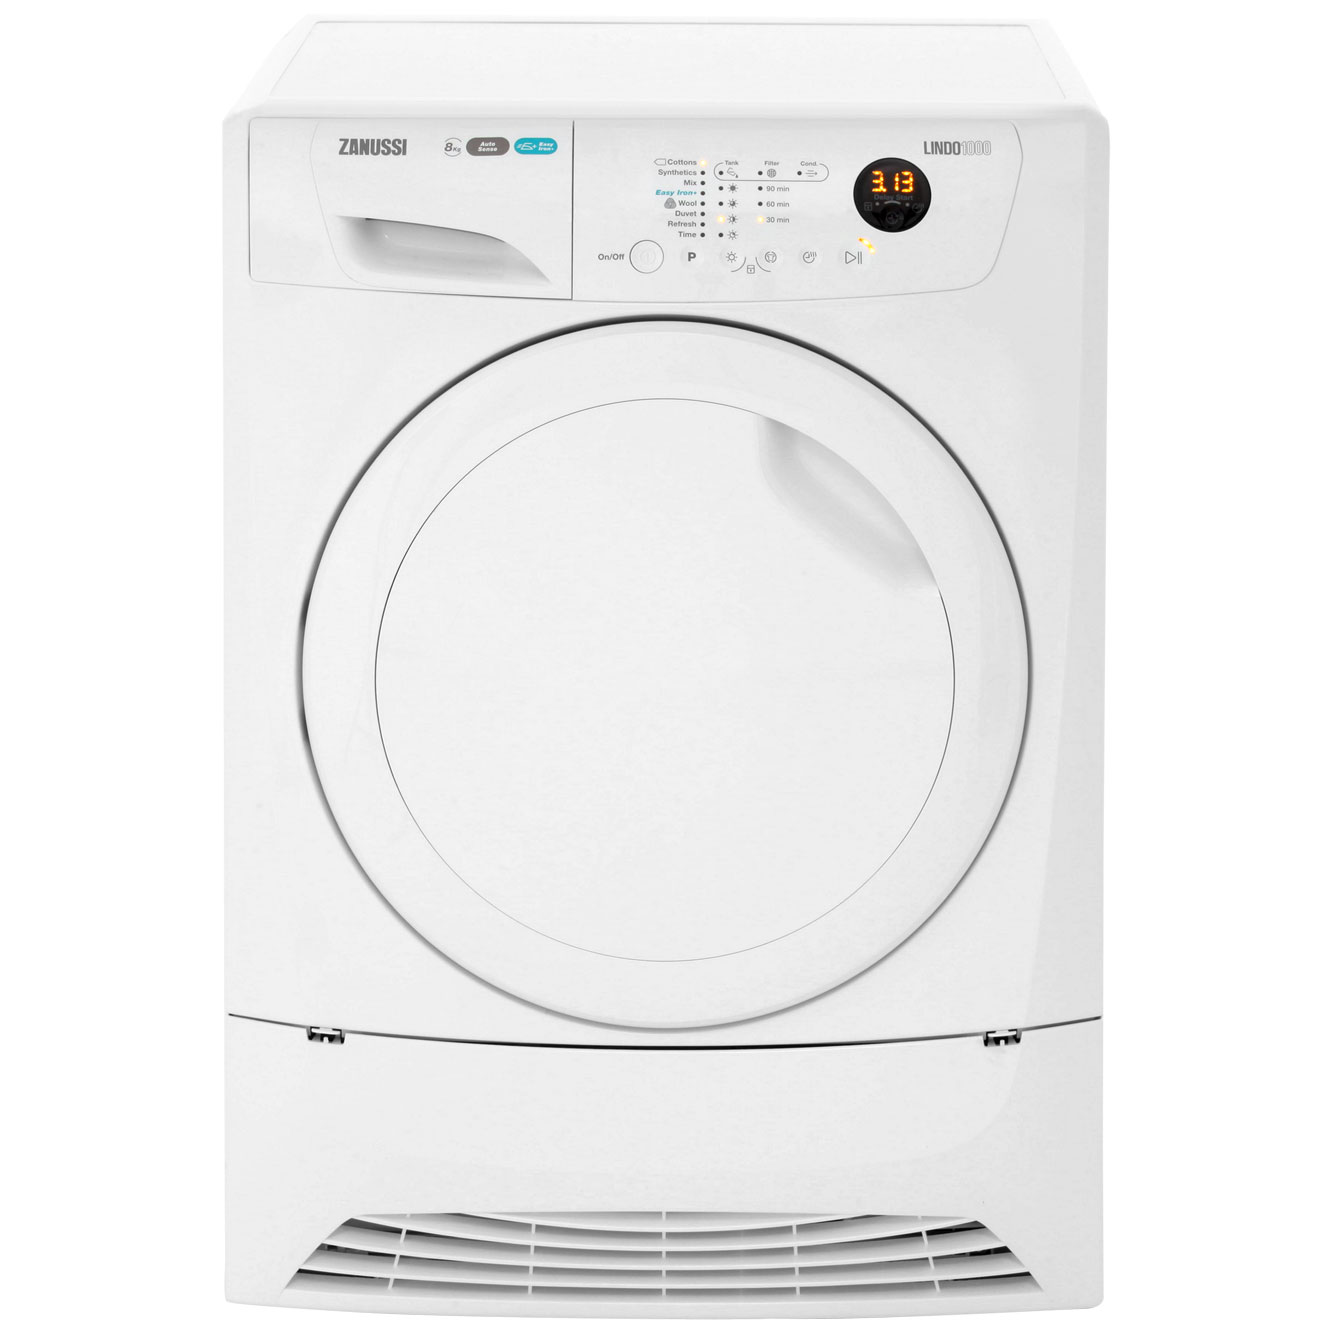 zanussi zdh8333pz lindo1000 a heat pump tumble dryer. Black Bedroom Furniture Sets. Home Design Ideas